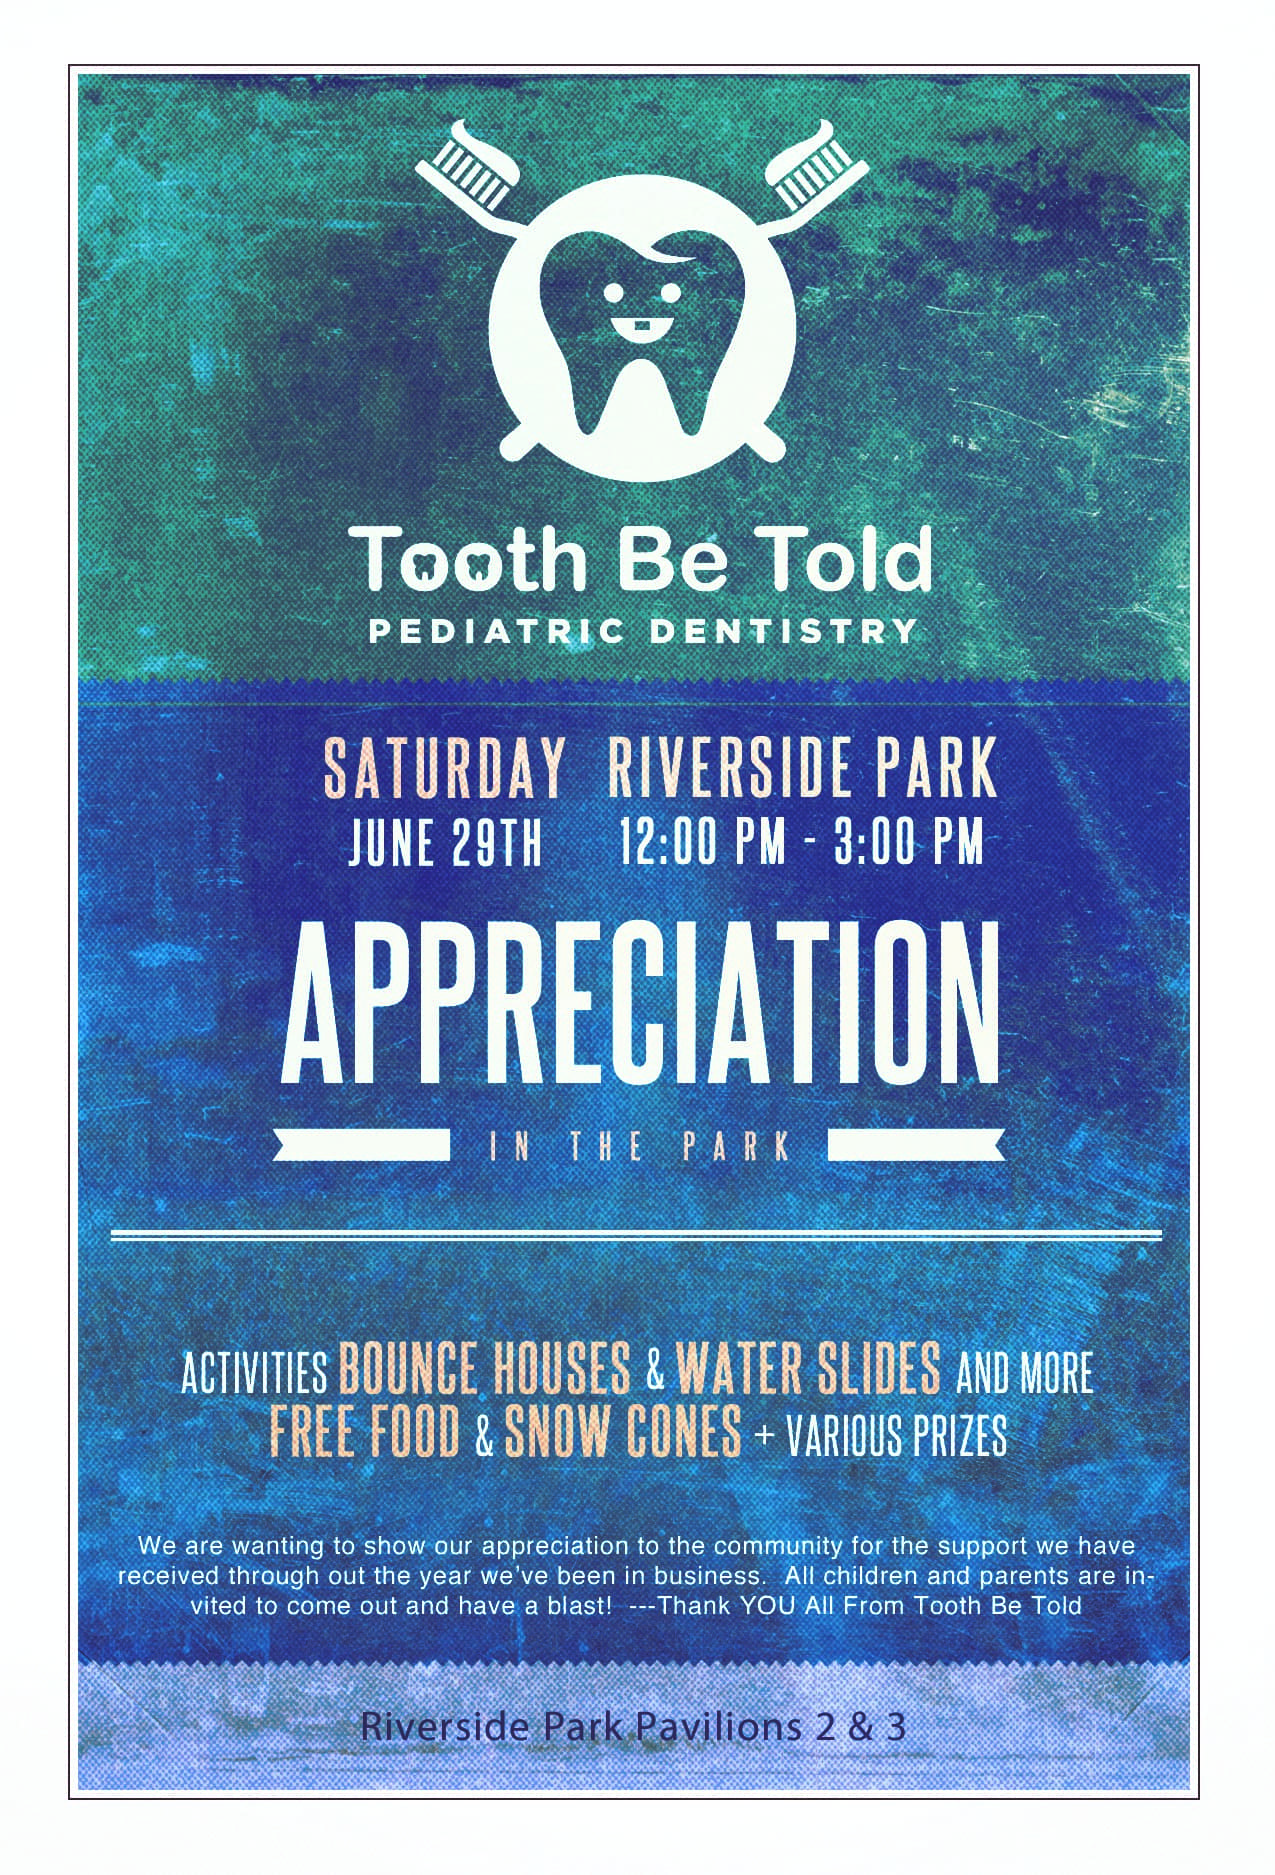 Tooth Be Told Appreciation in the Park 2019